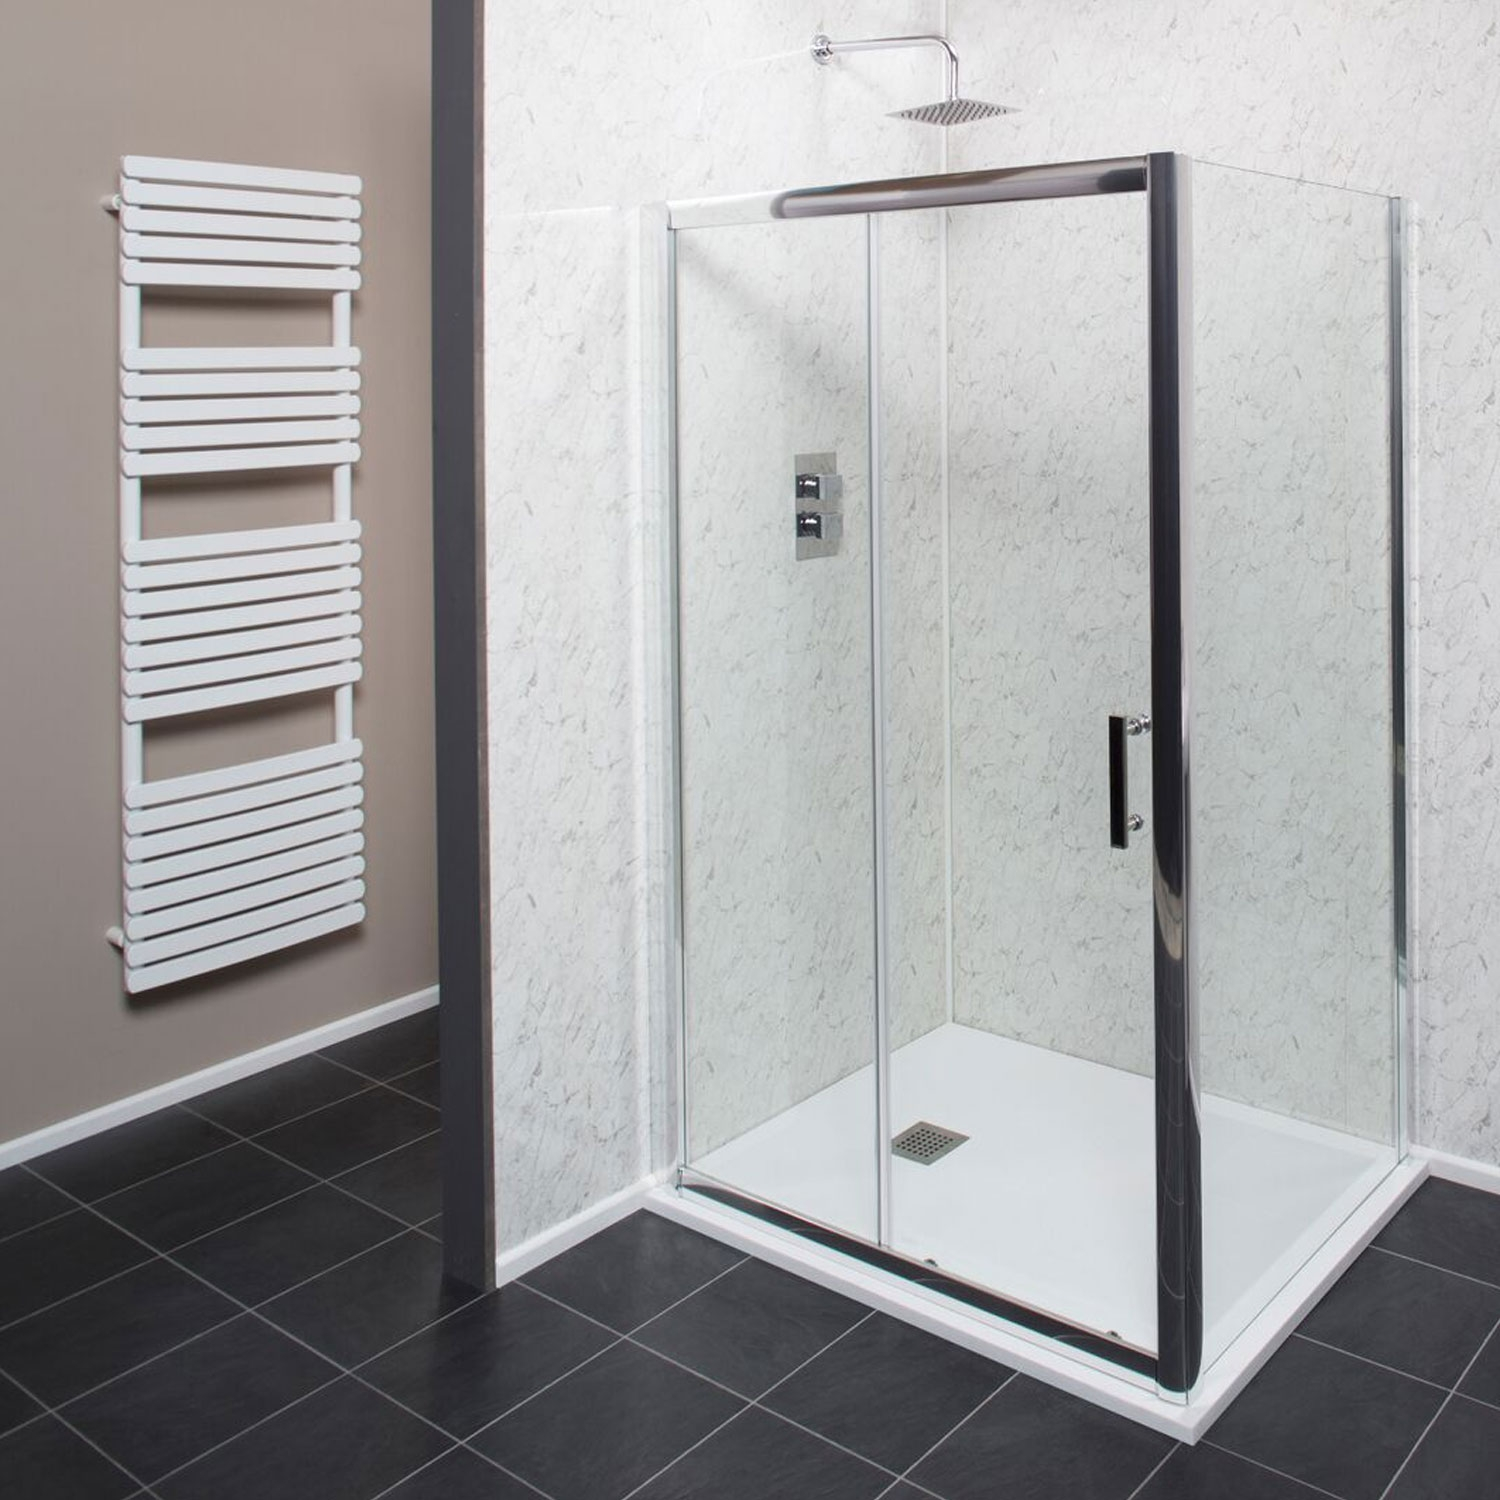 Cali Cass Six Sliding Shower Door 1000mm Wide - 6mm Glass-1